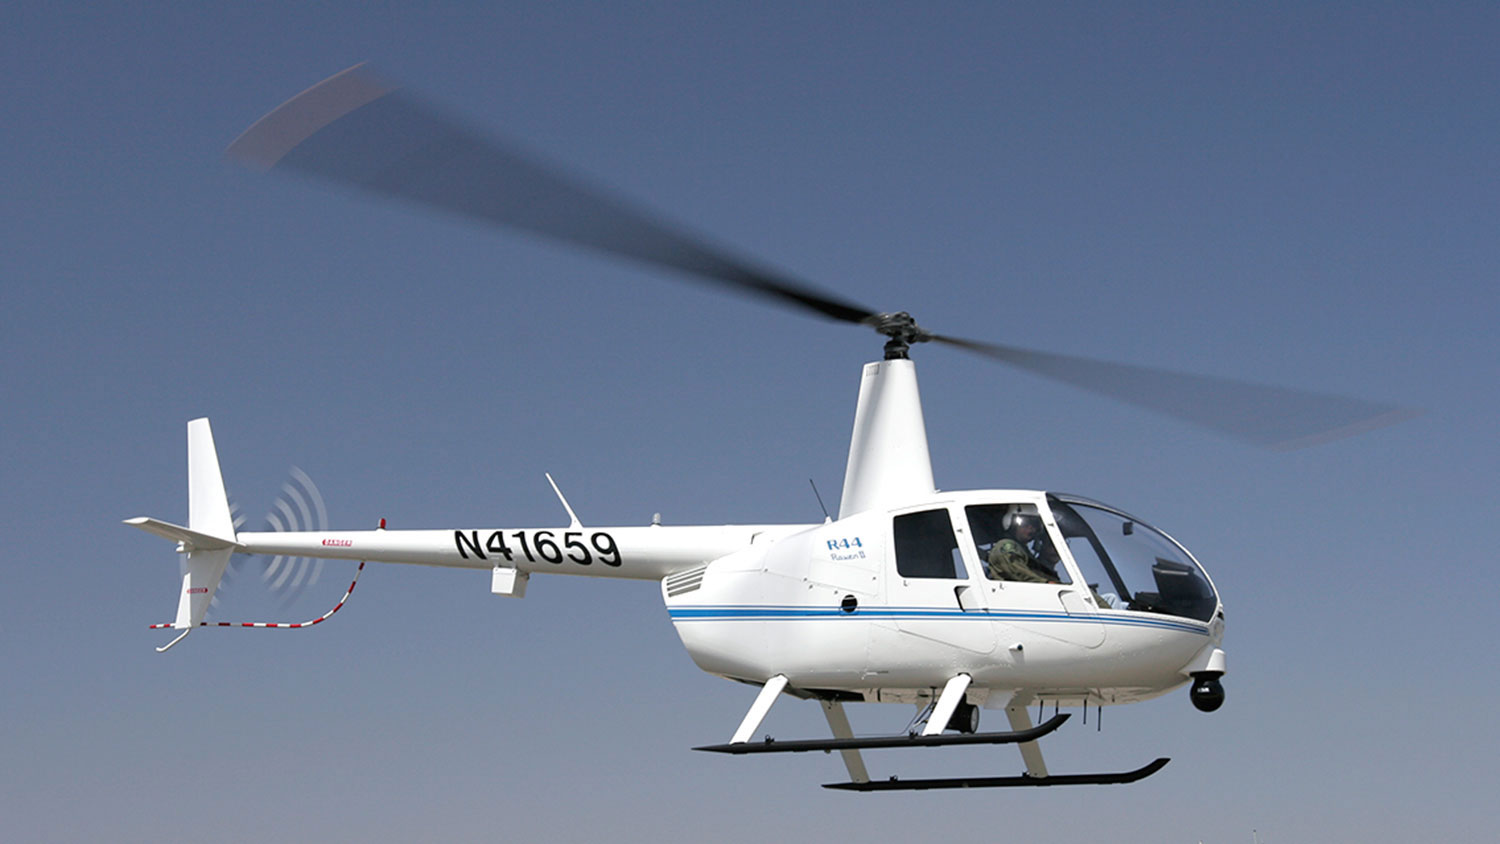 R44 POLICE HELICOPTER